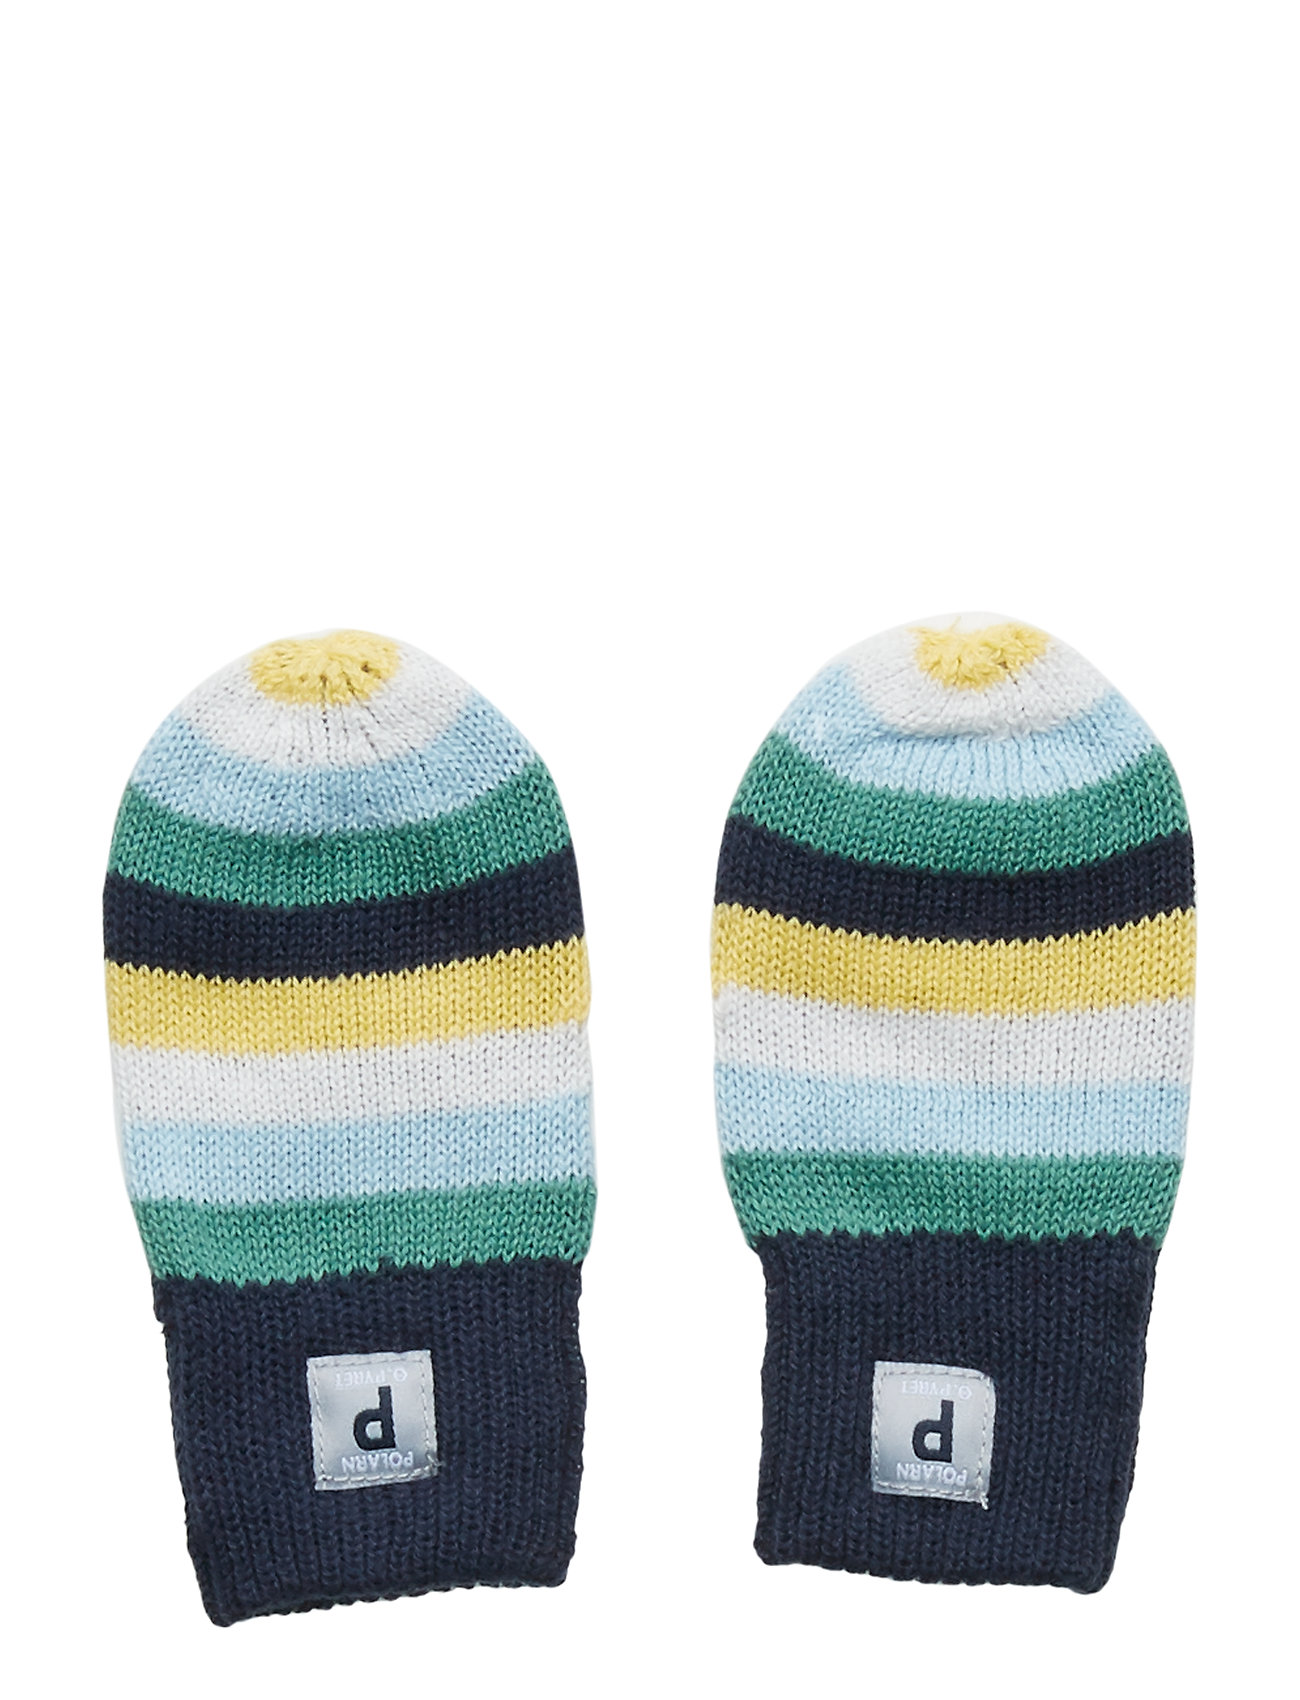 Polarn O. Pyret Striped Interlock Thumbless Baby Mittens